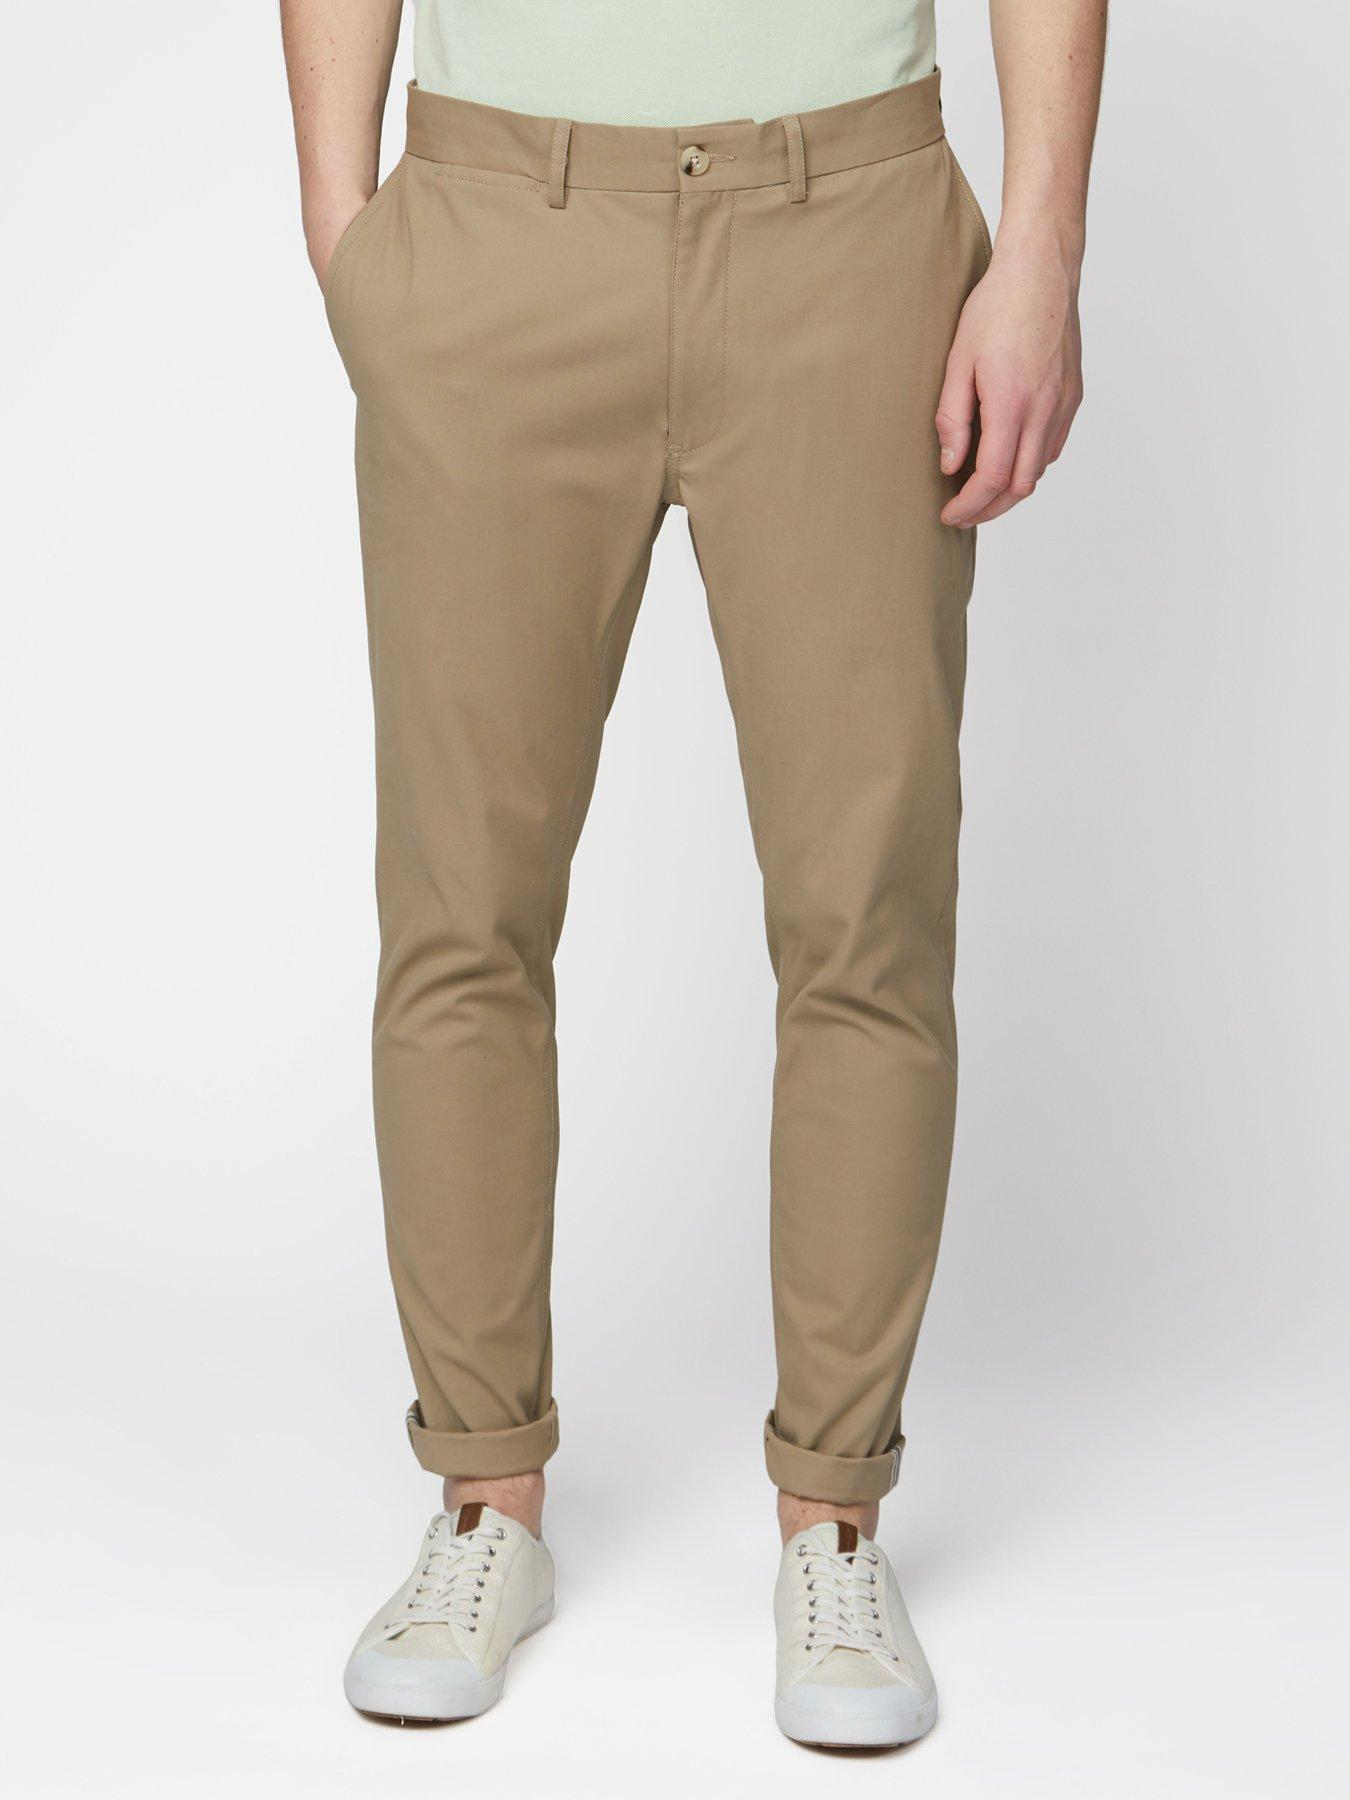 Casual Trousers   Trousers \u0026 chinos